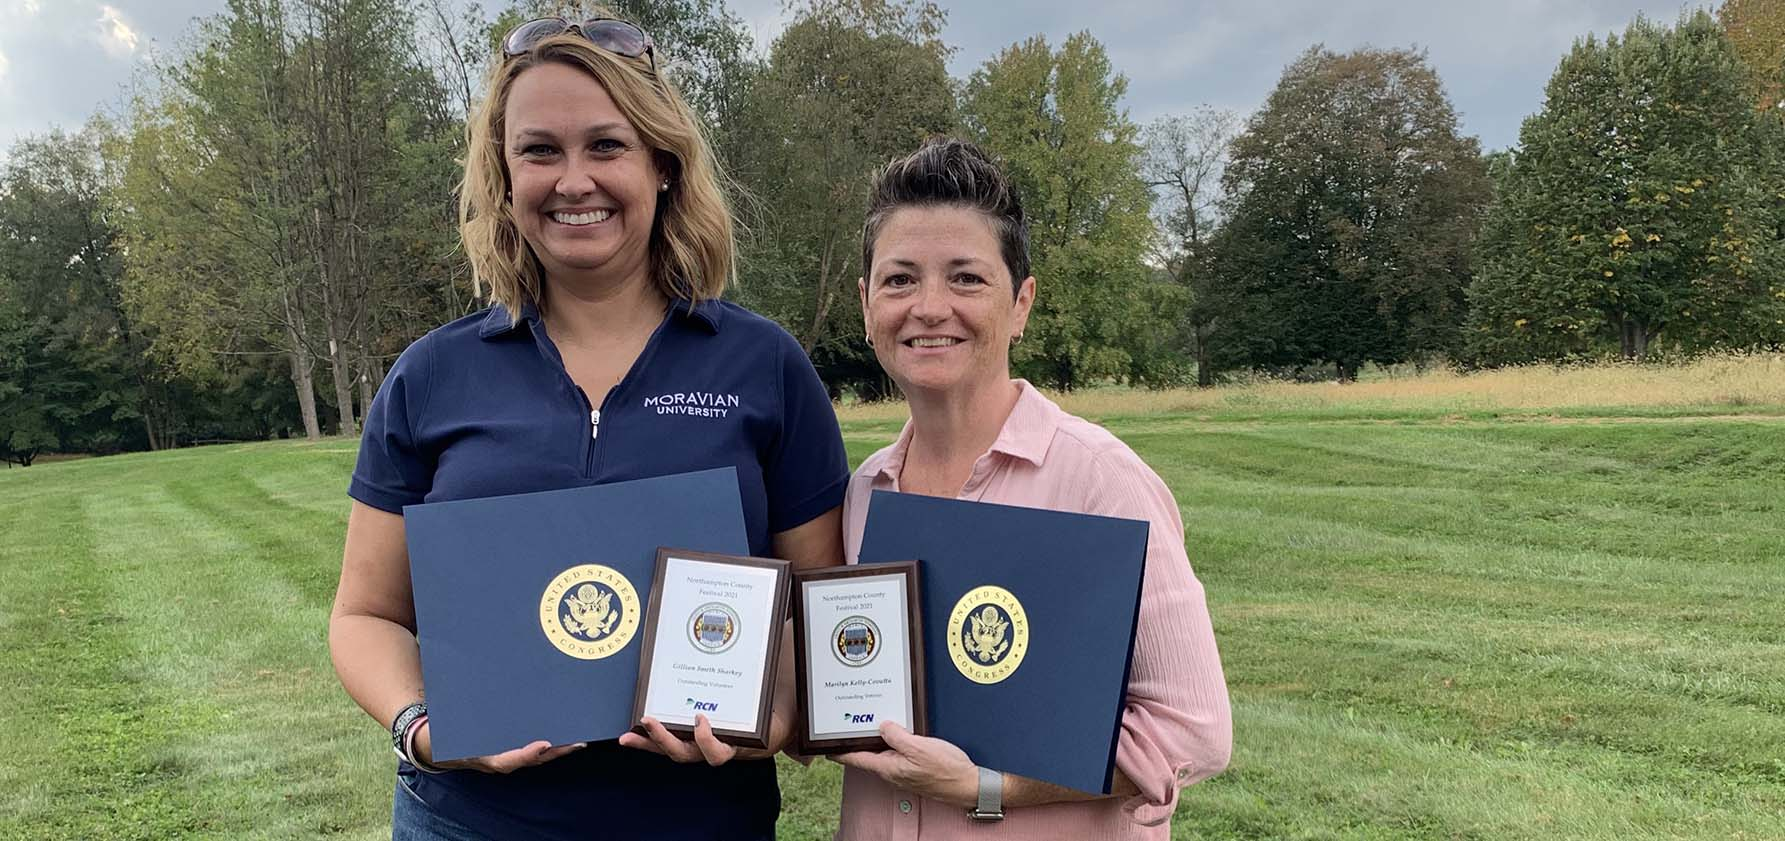 At the Northampton County festival, Gillian Sharkey (left) and Marilyn Kelly-Cavotta received awards for their service to the county.